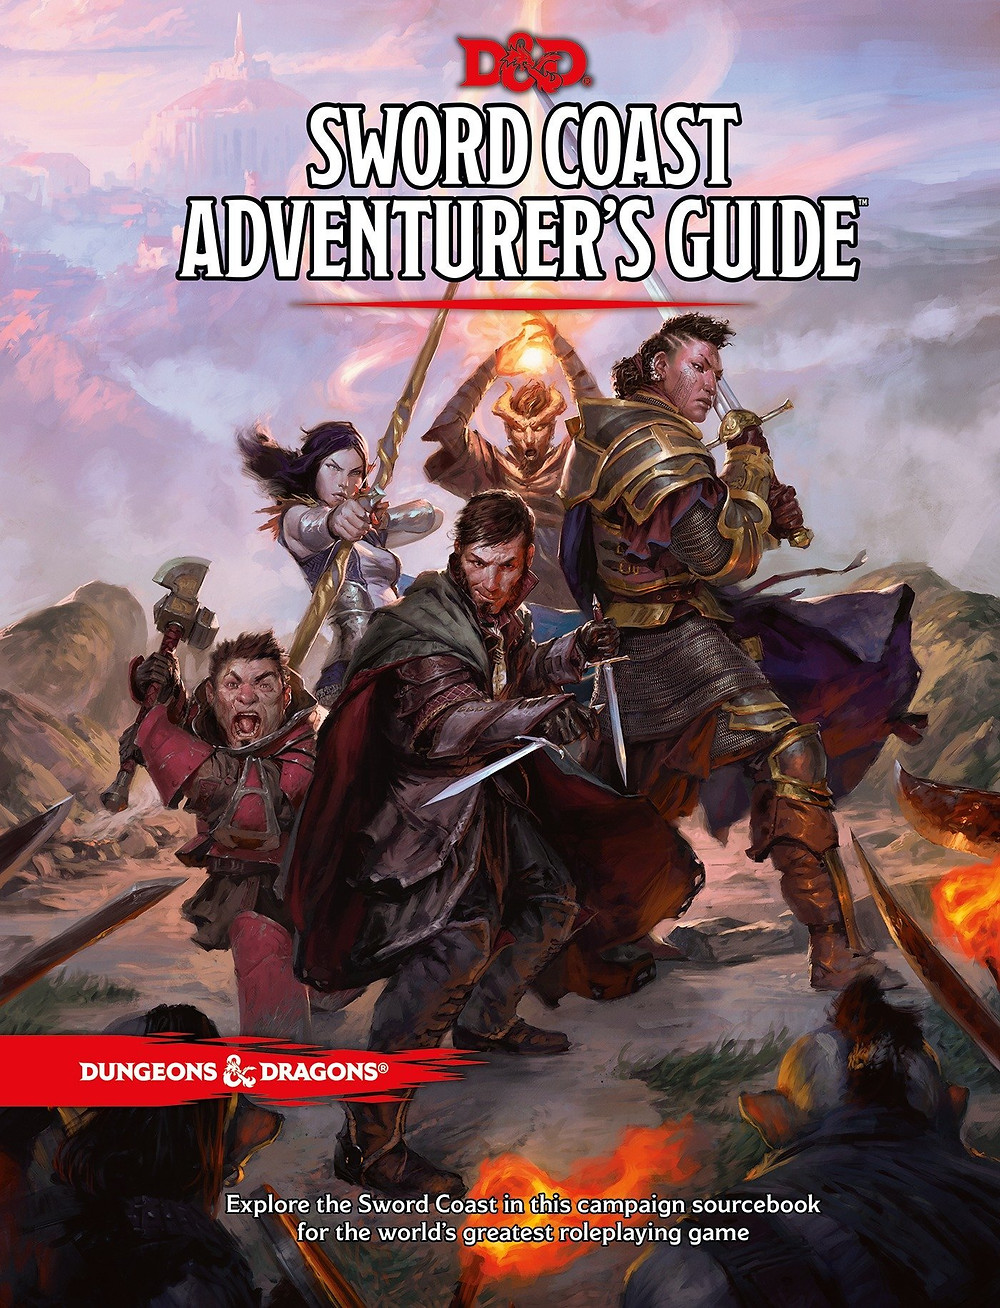 An image of the Sword Coast Adventurer's Guide sourcebook.